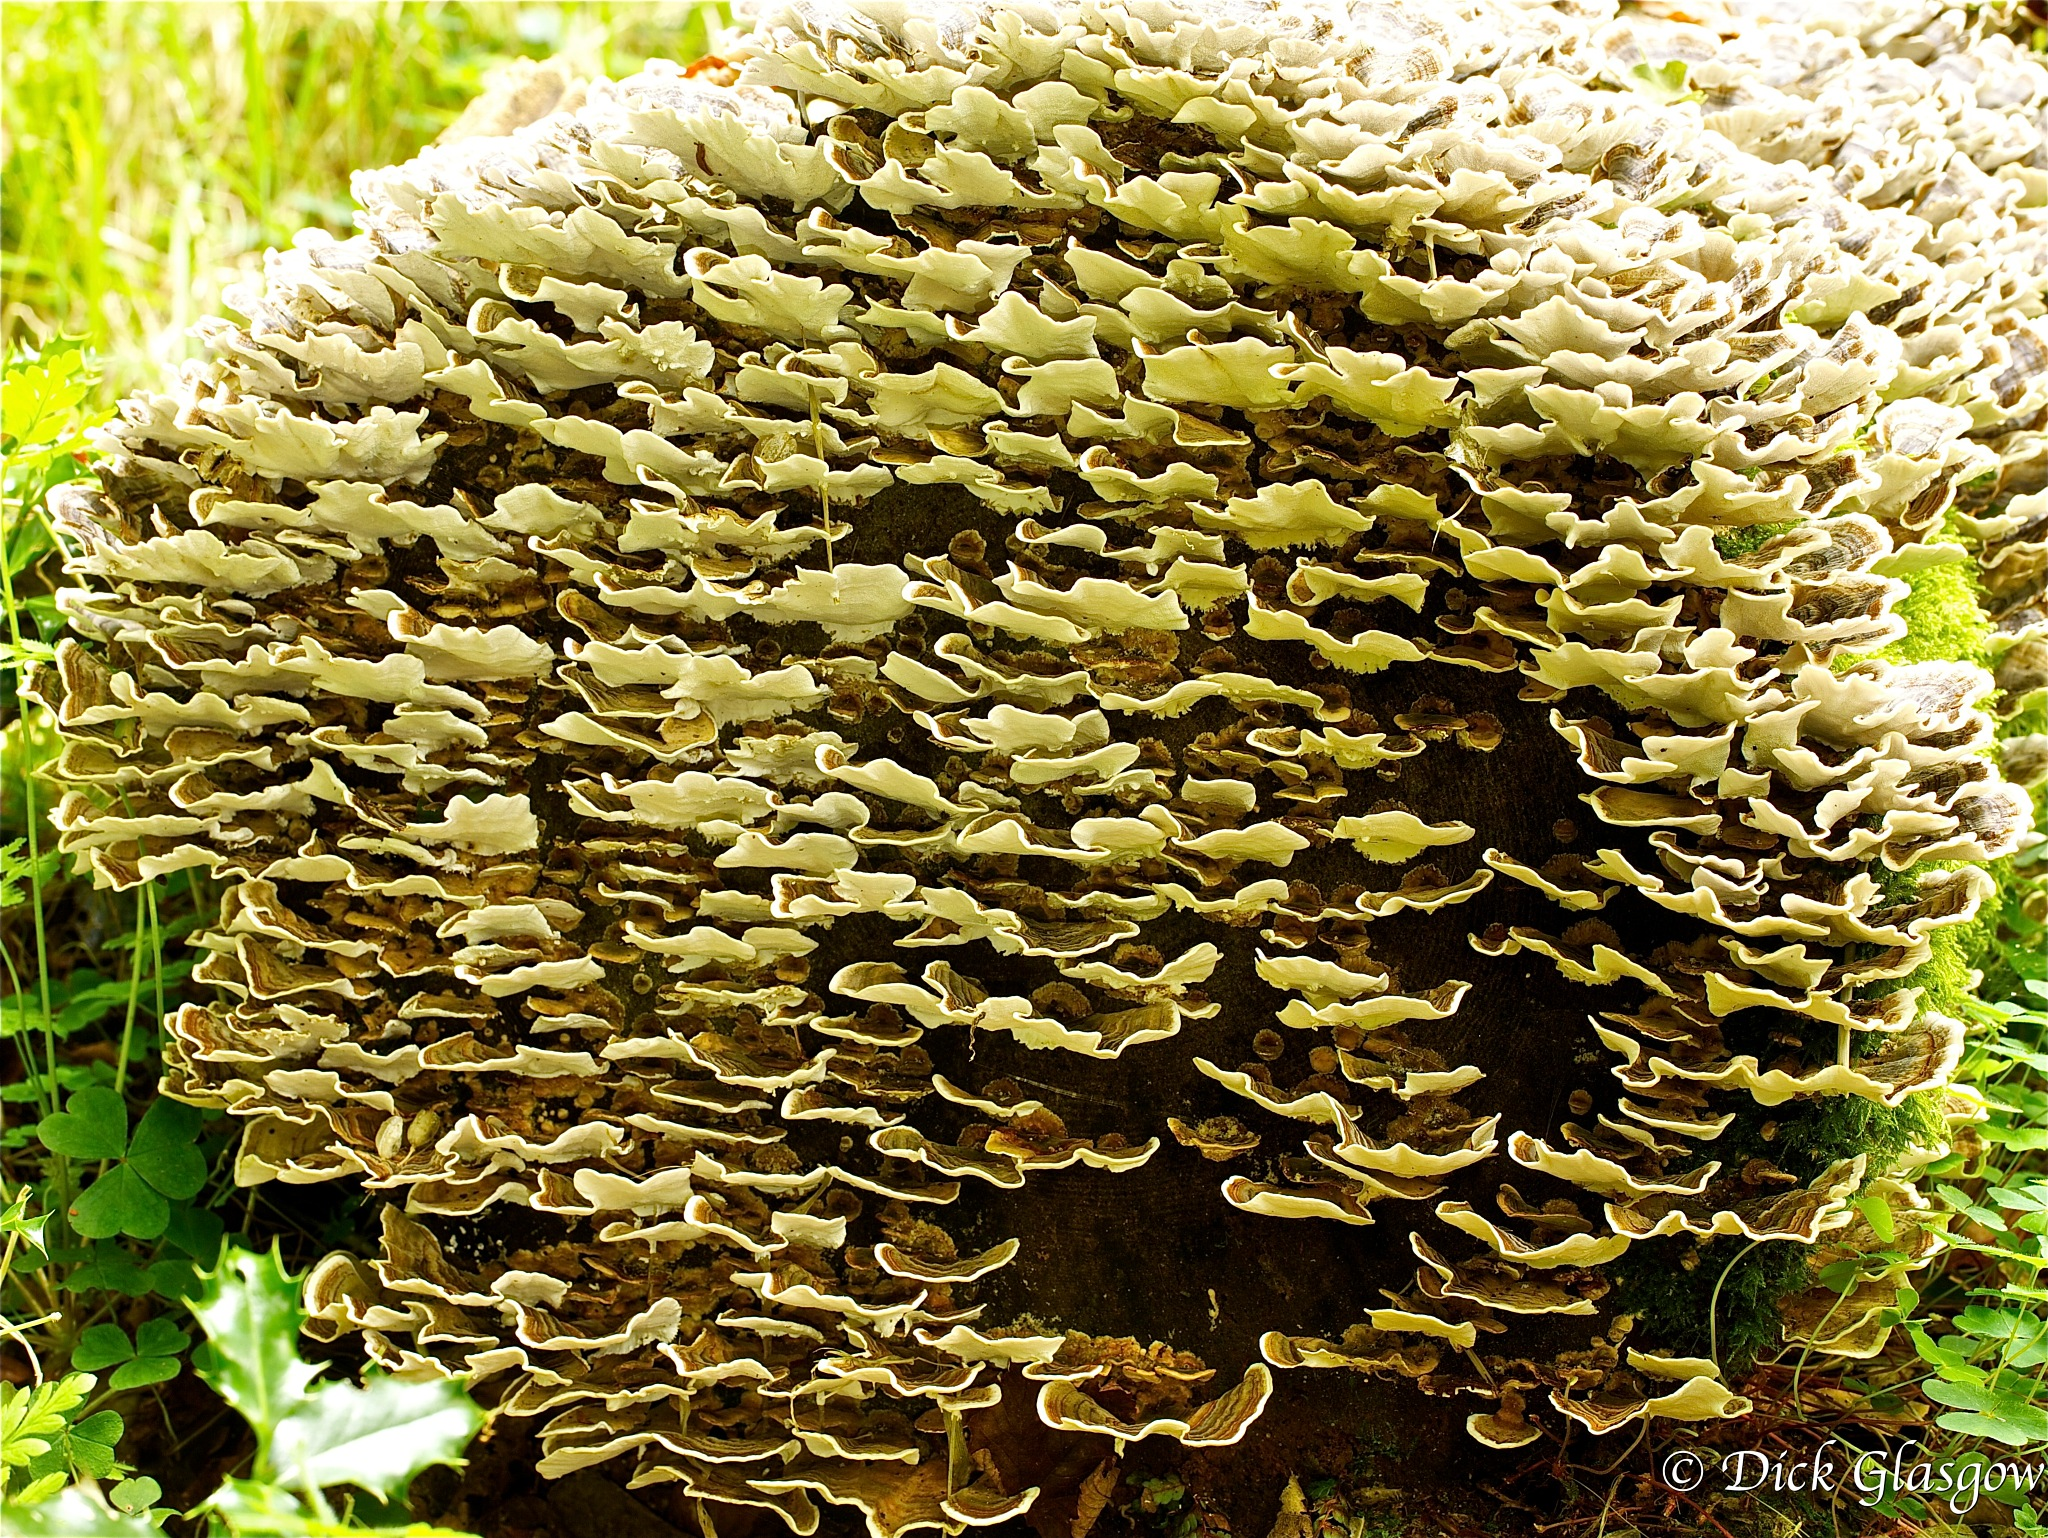 Tree Log covered in Fungus by Dick Glasgow